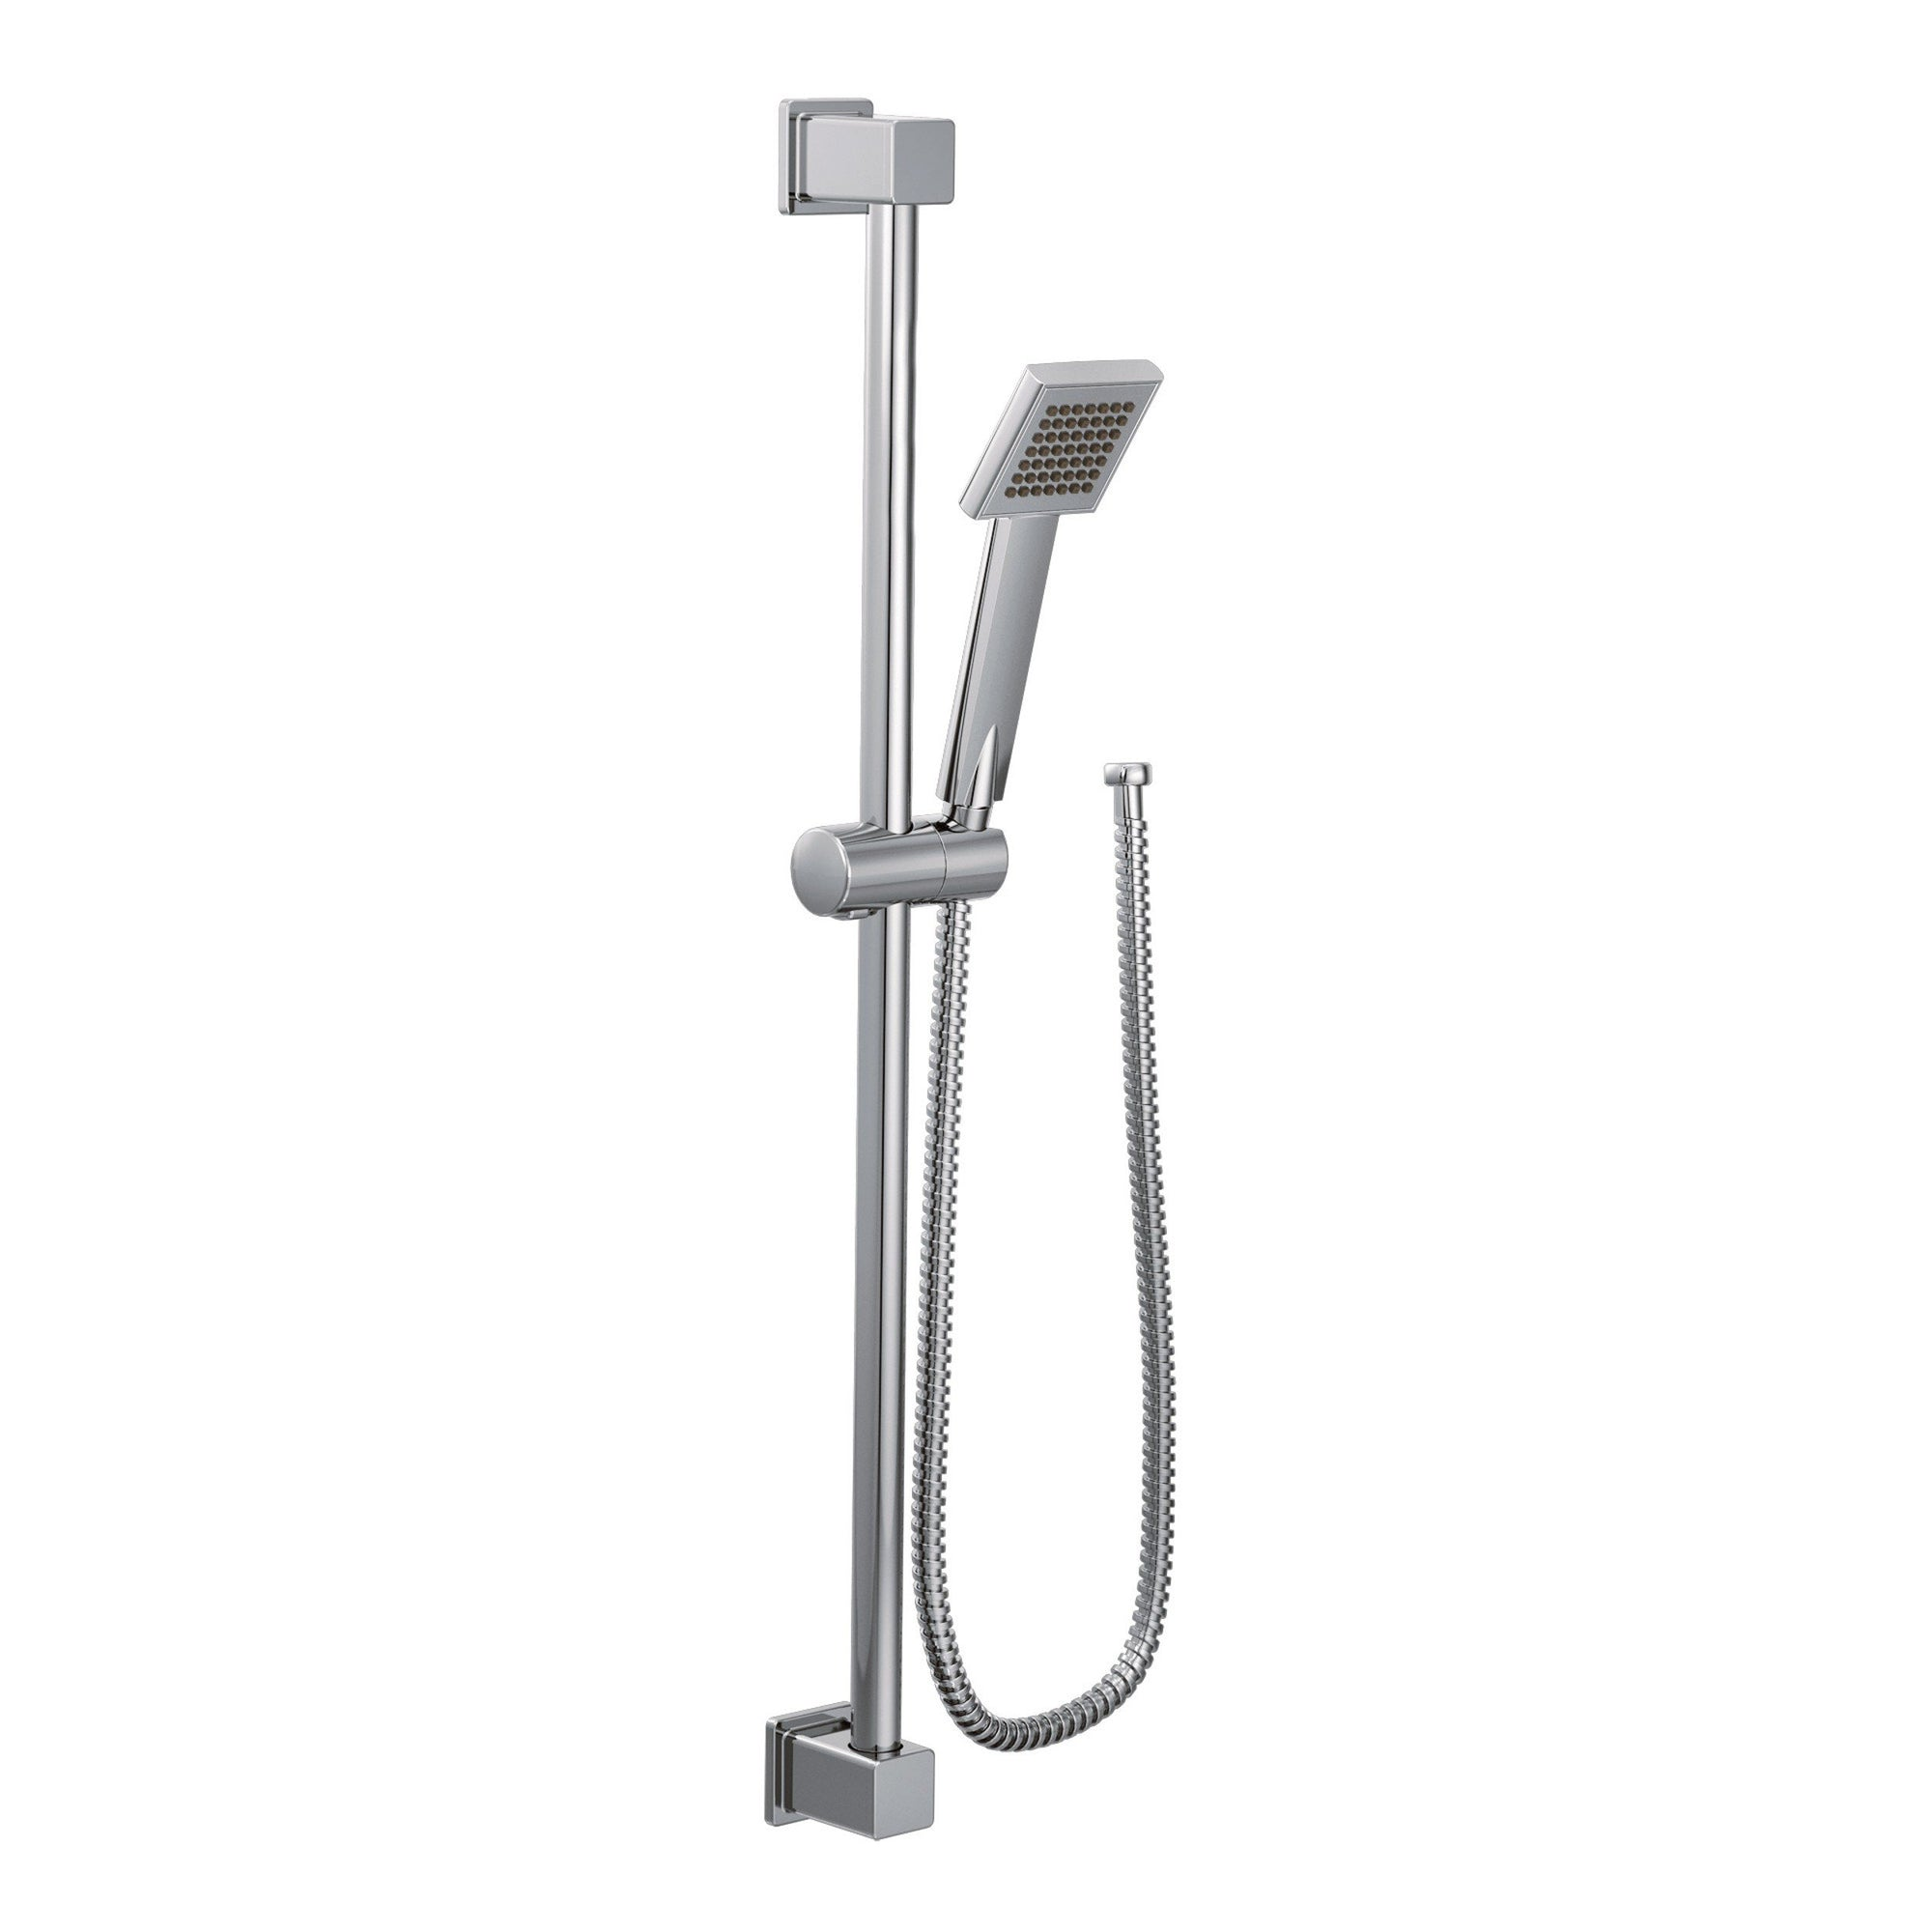 90 Degree Eco-Performance Hand Shower Handheld Shower